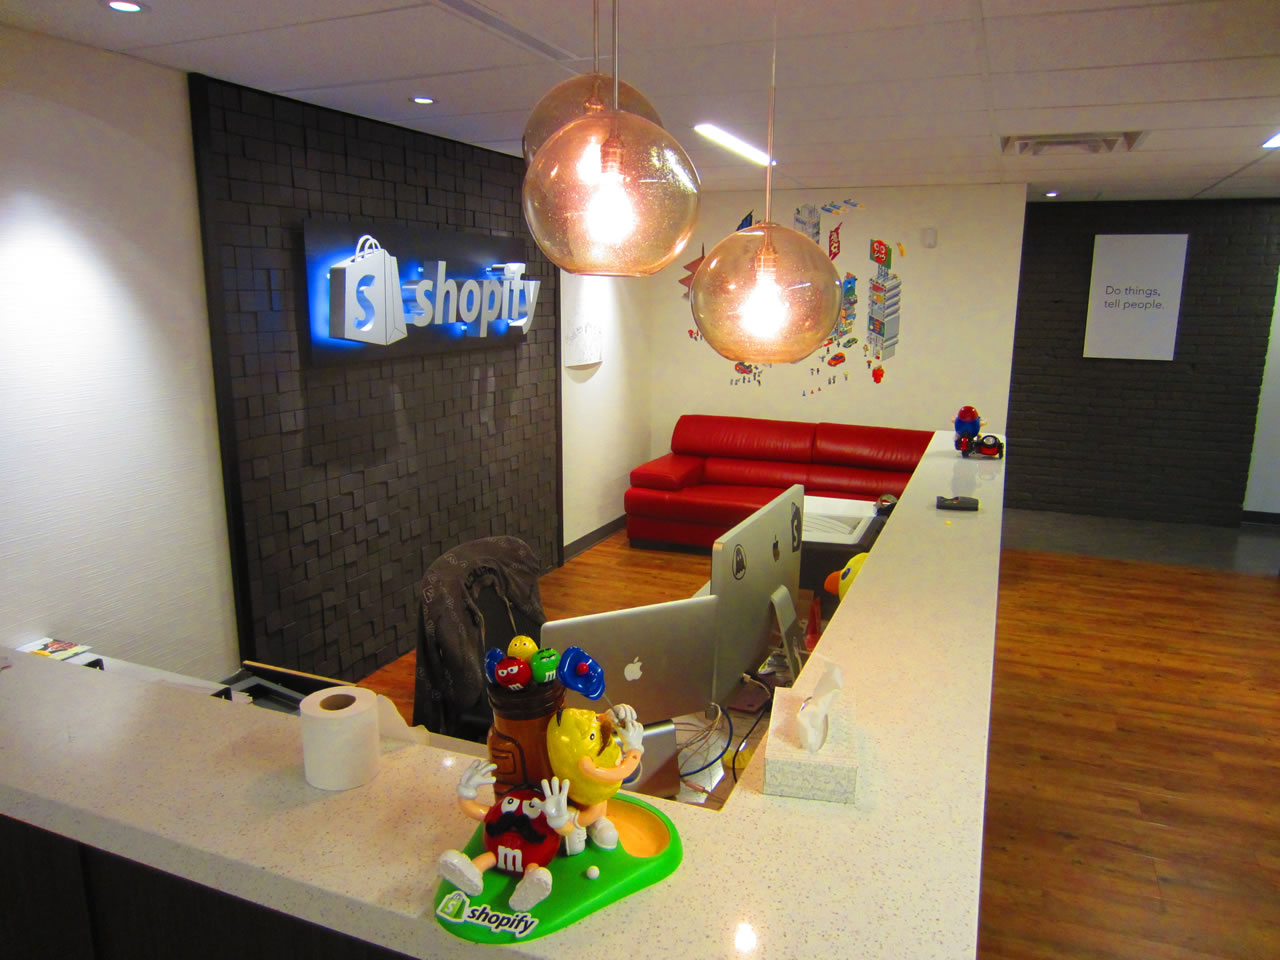 Shopify office lobby, featuring the front desk